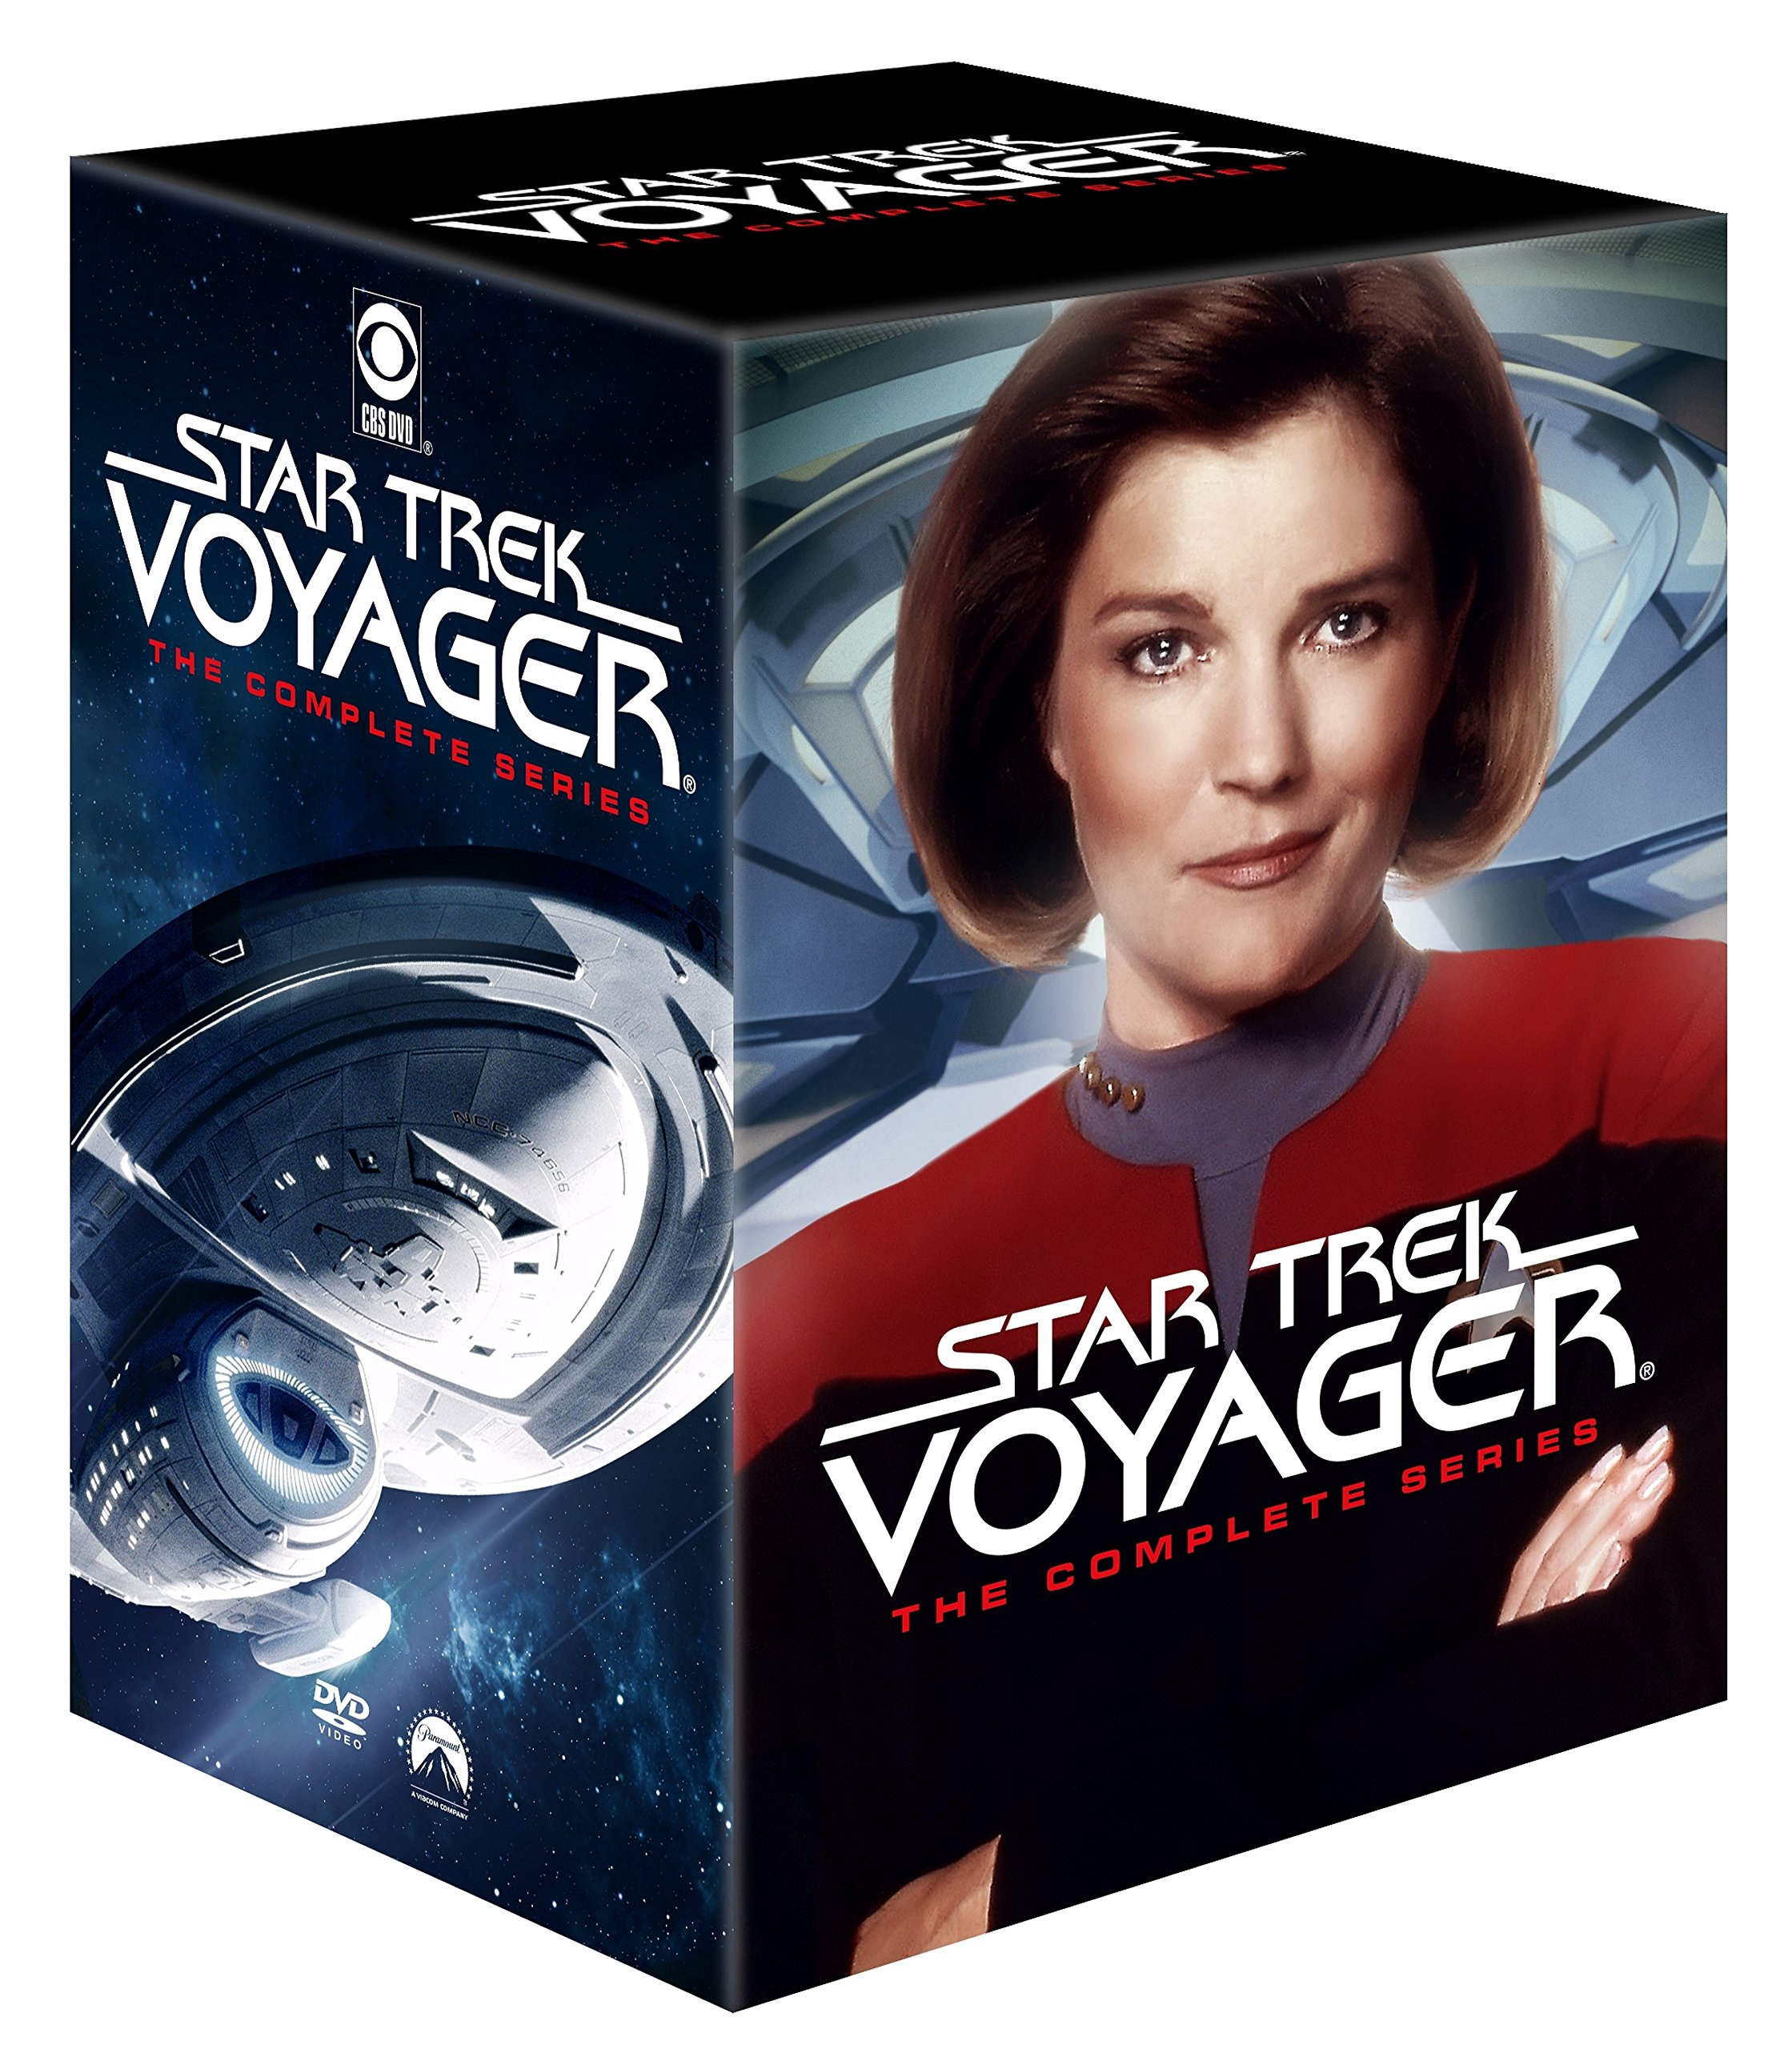 Buy Star Trek Voyager Now!